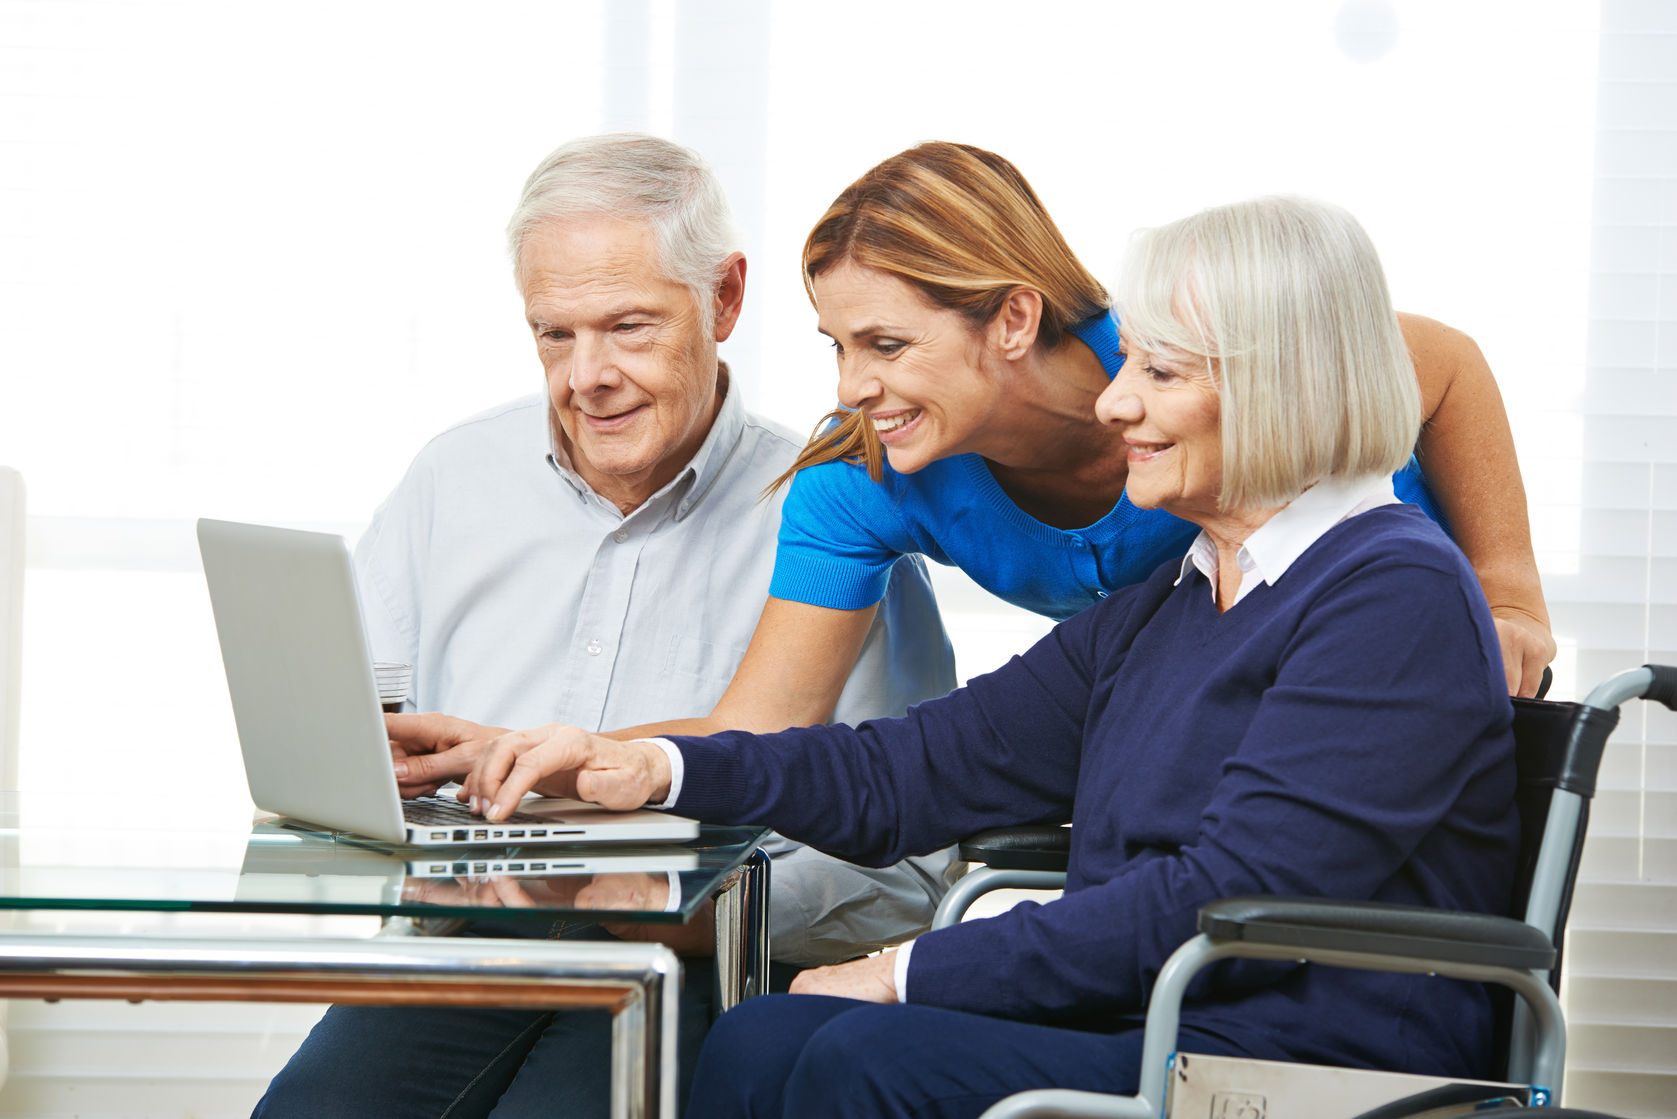 46991941 - smiling woman helping senior couple with laptop computer and the internet